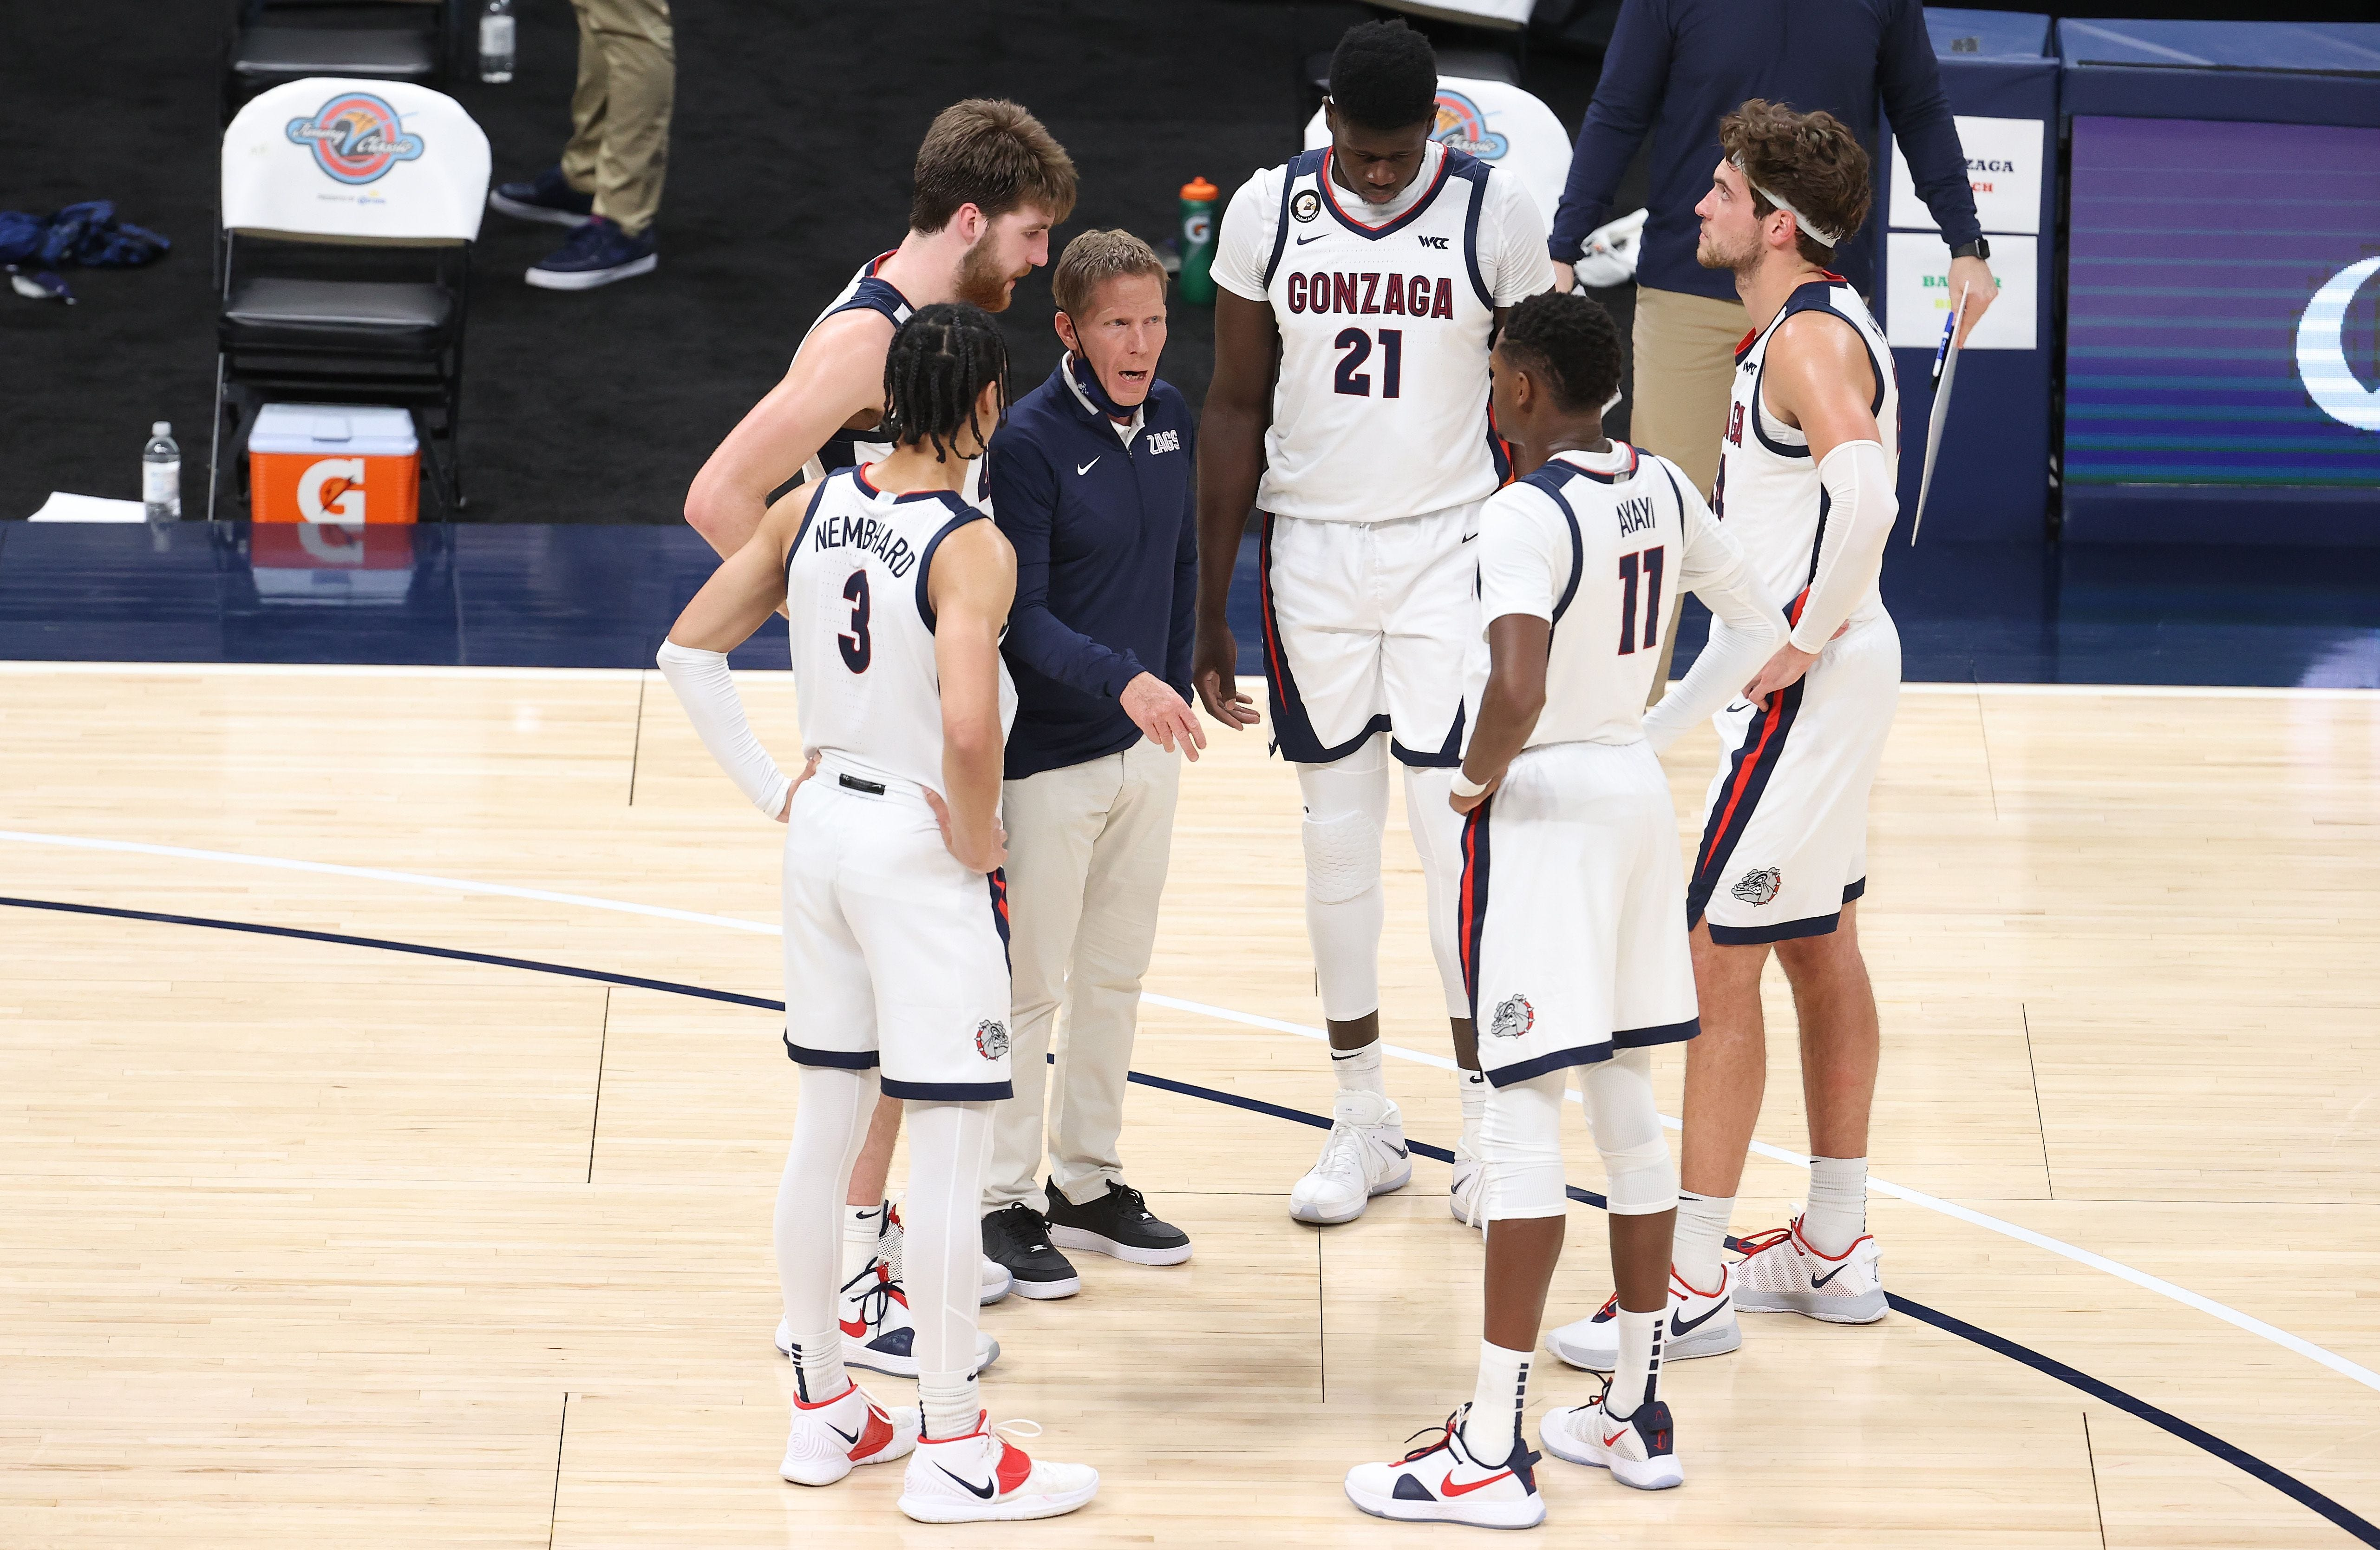 Gonzaga-Baylor cancellation reinforces college hoops' COVID-19 issues